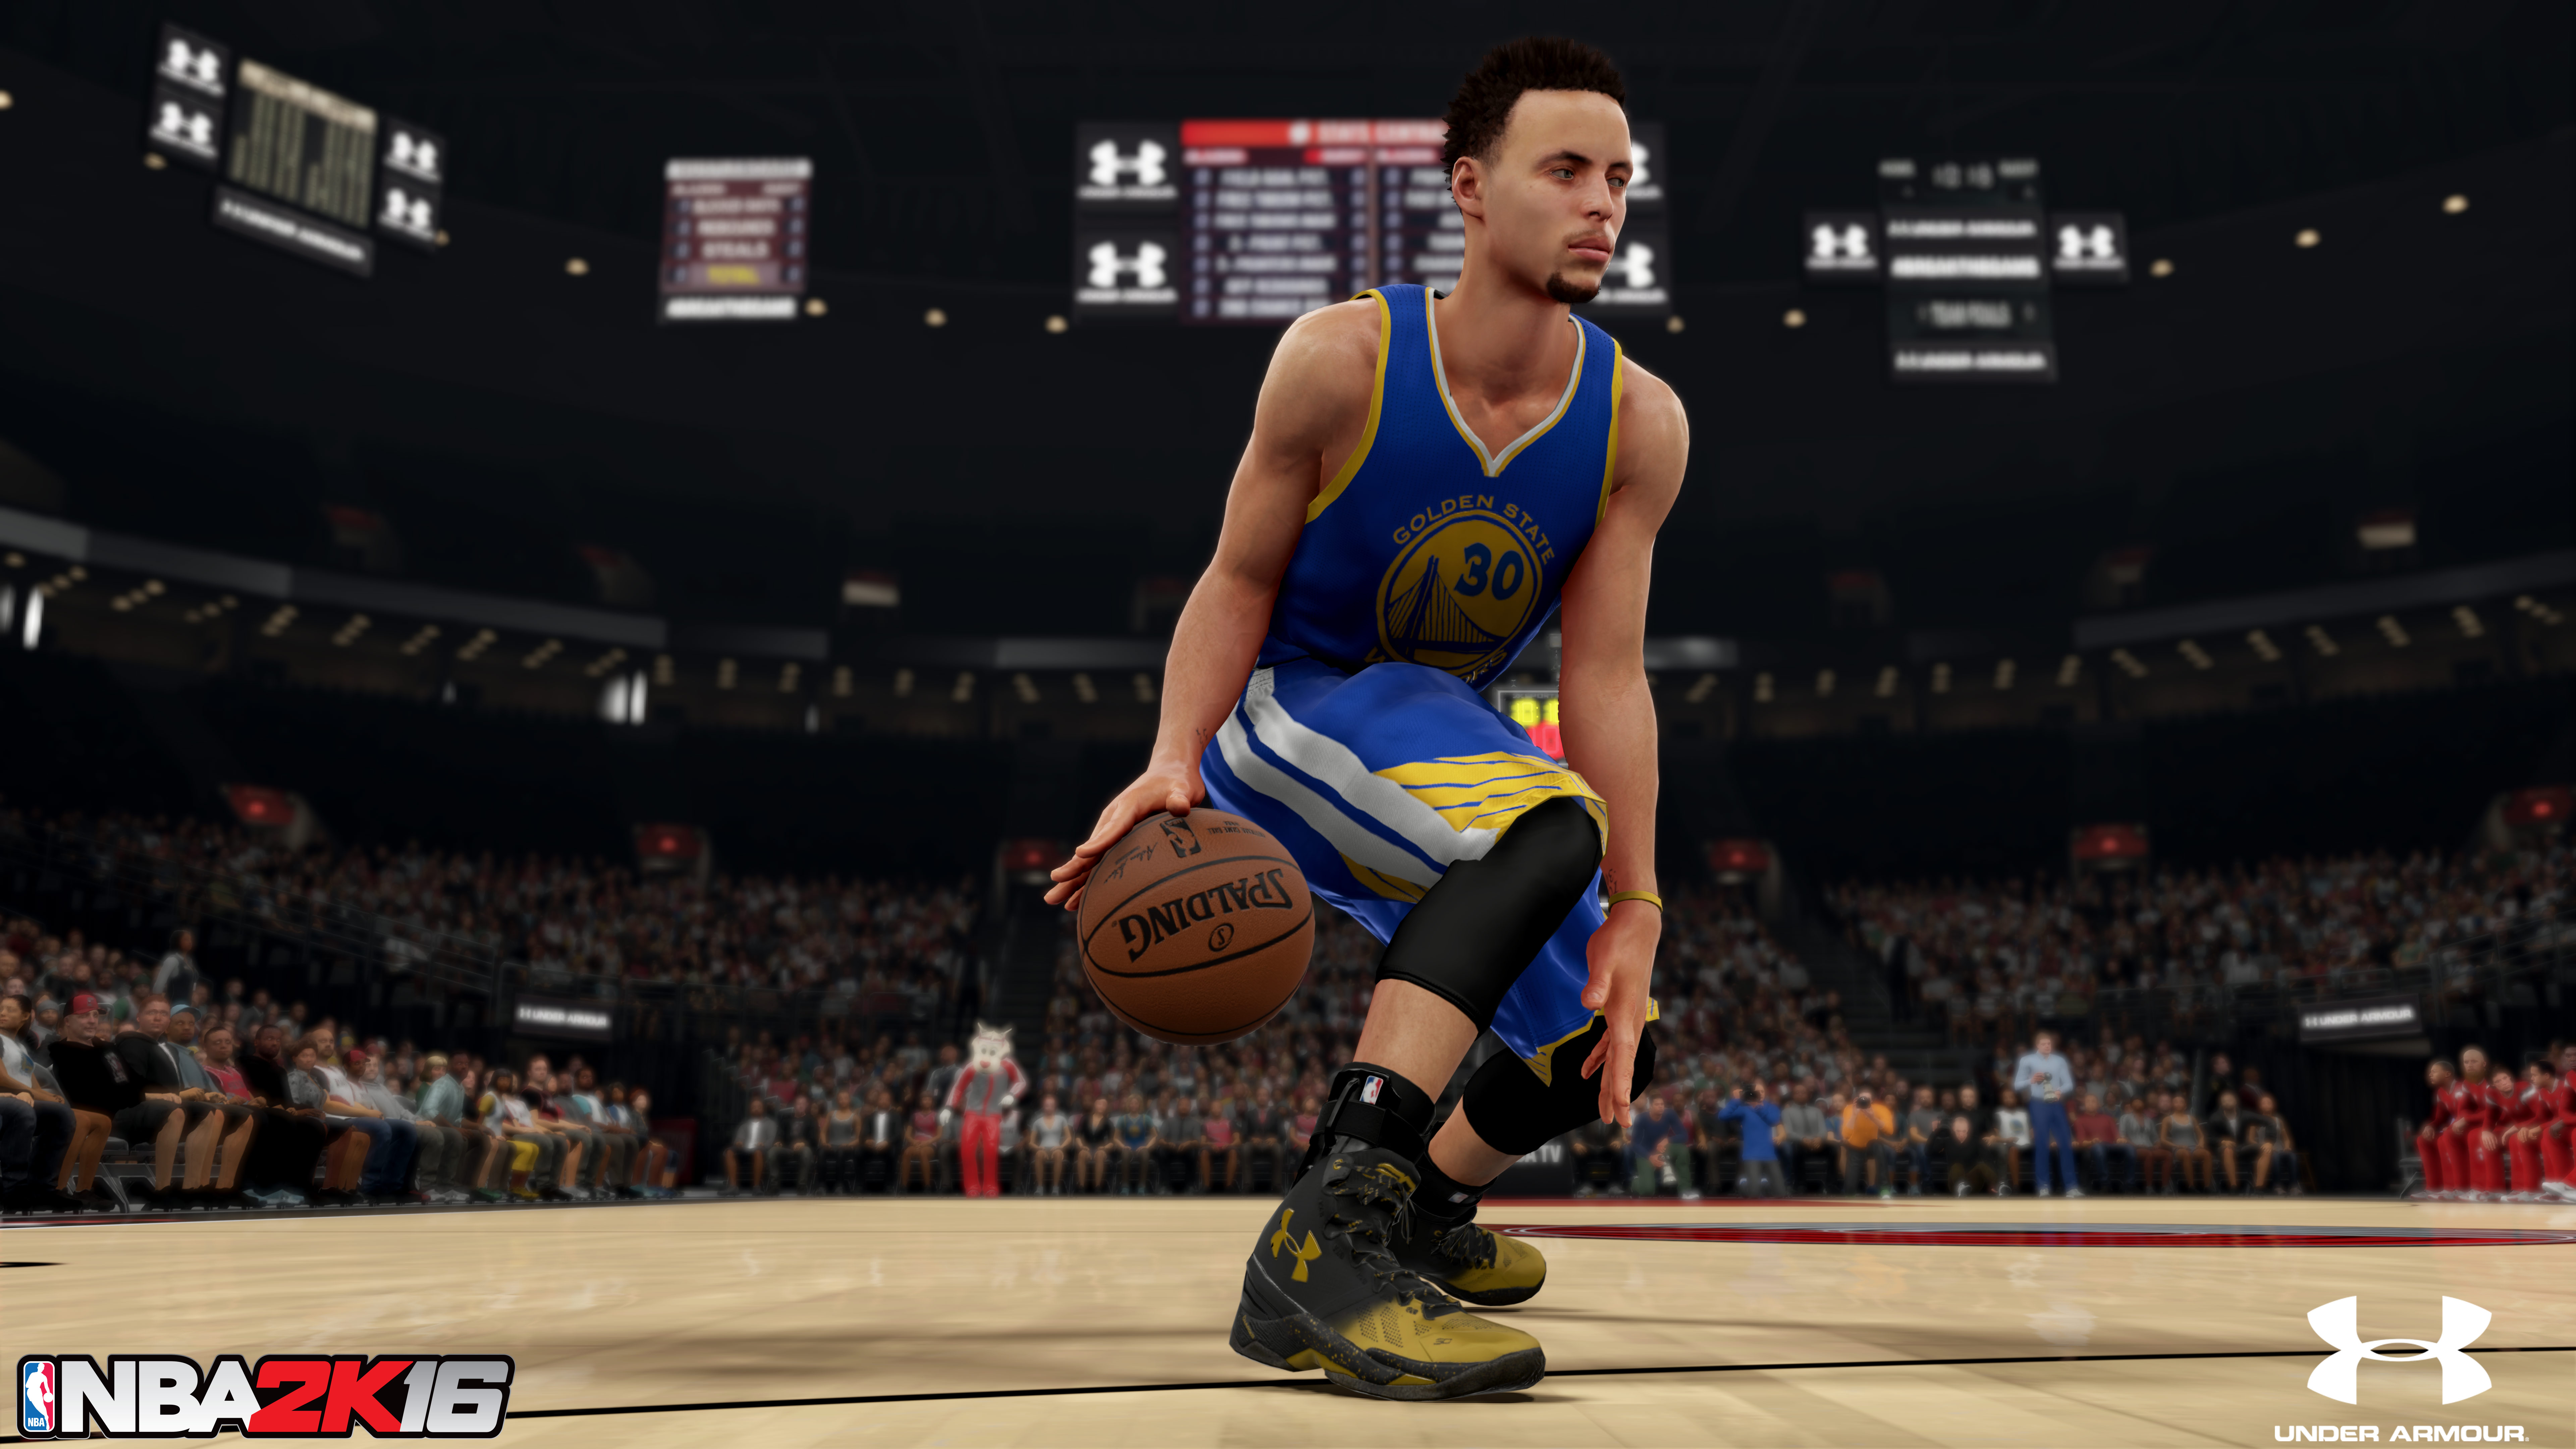 Under Armour Helps Stephen Curry #BreakTheGame With NBA 2K